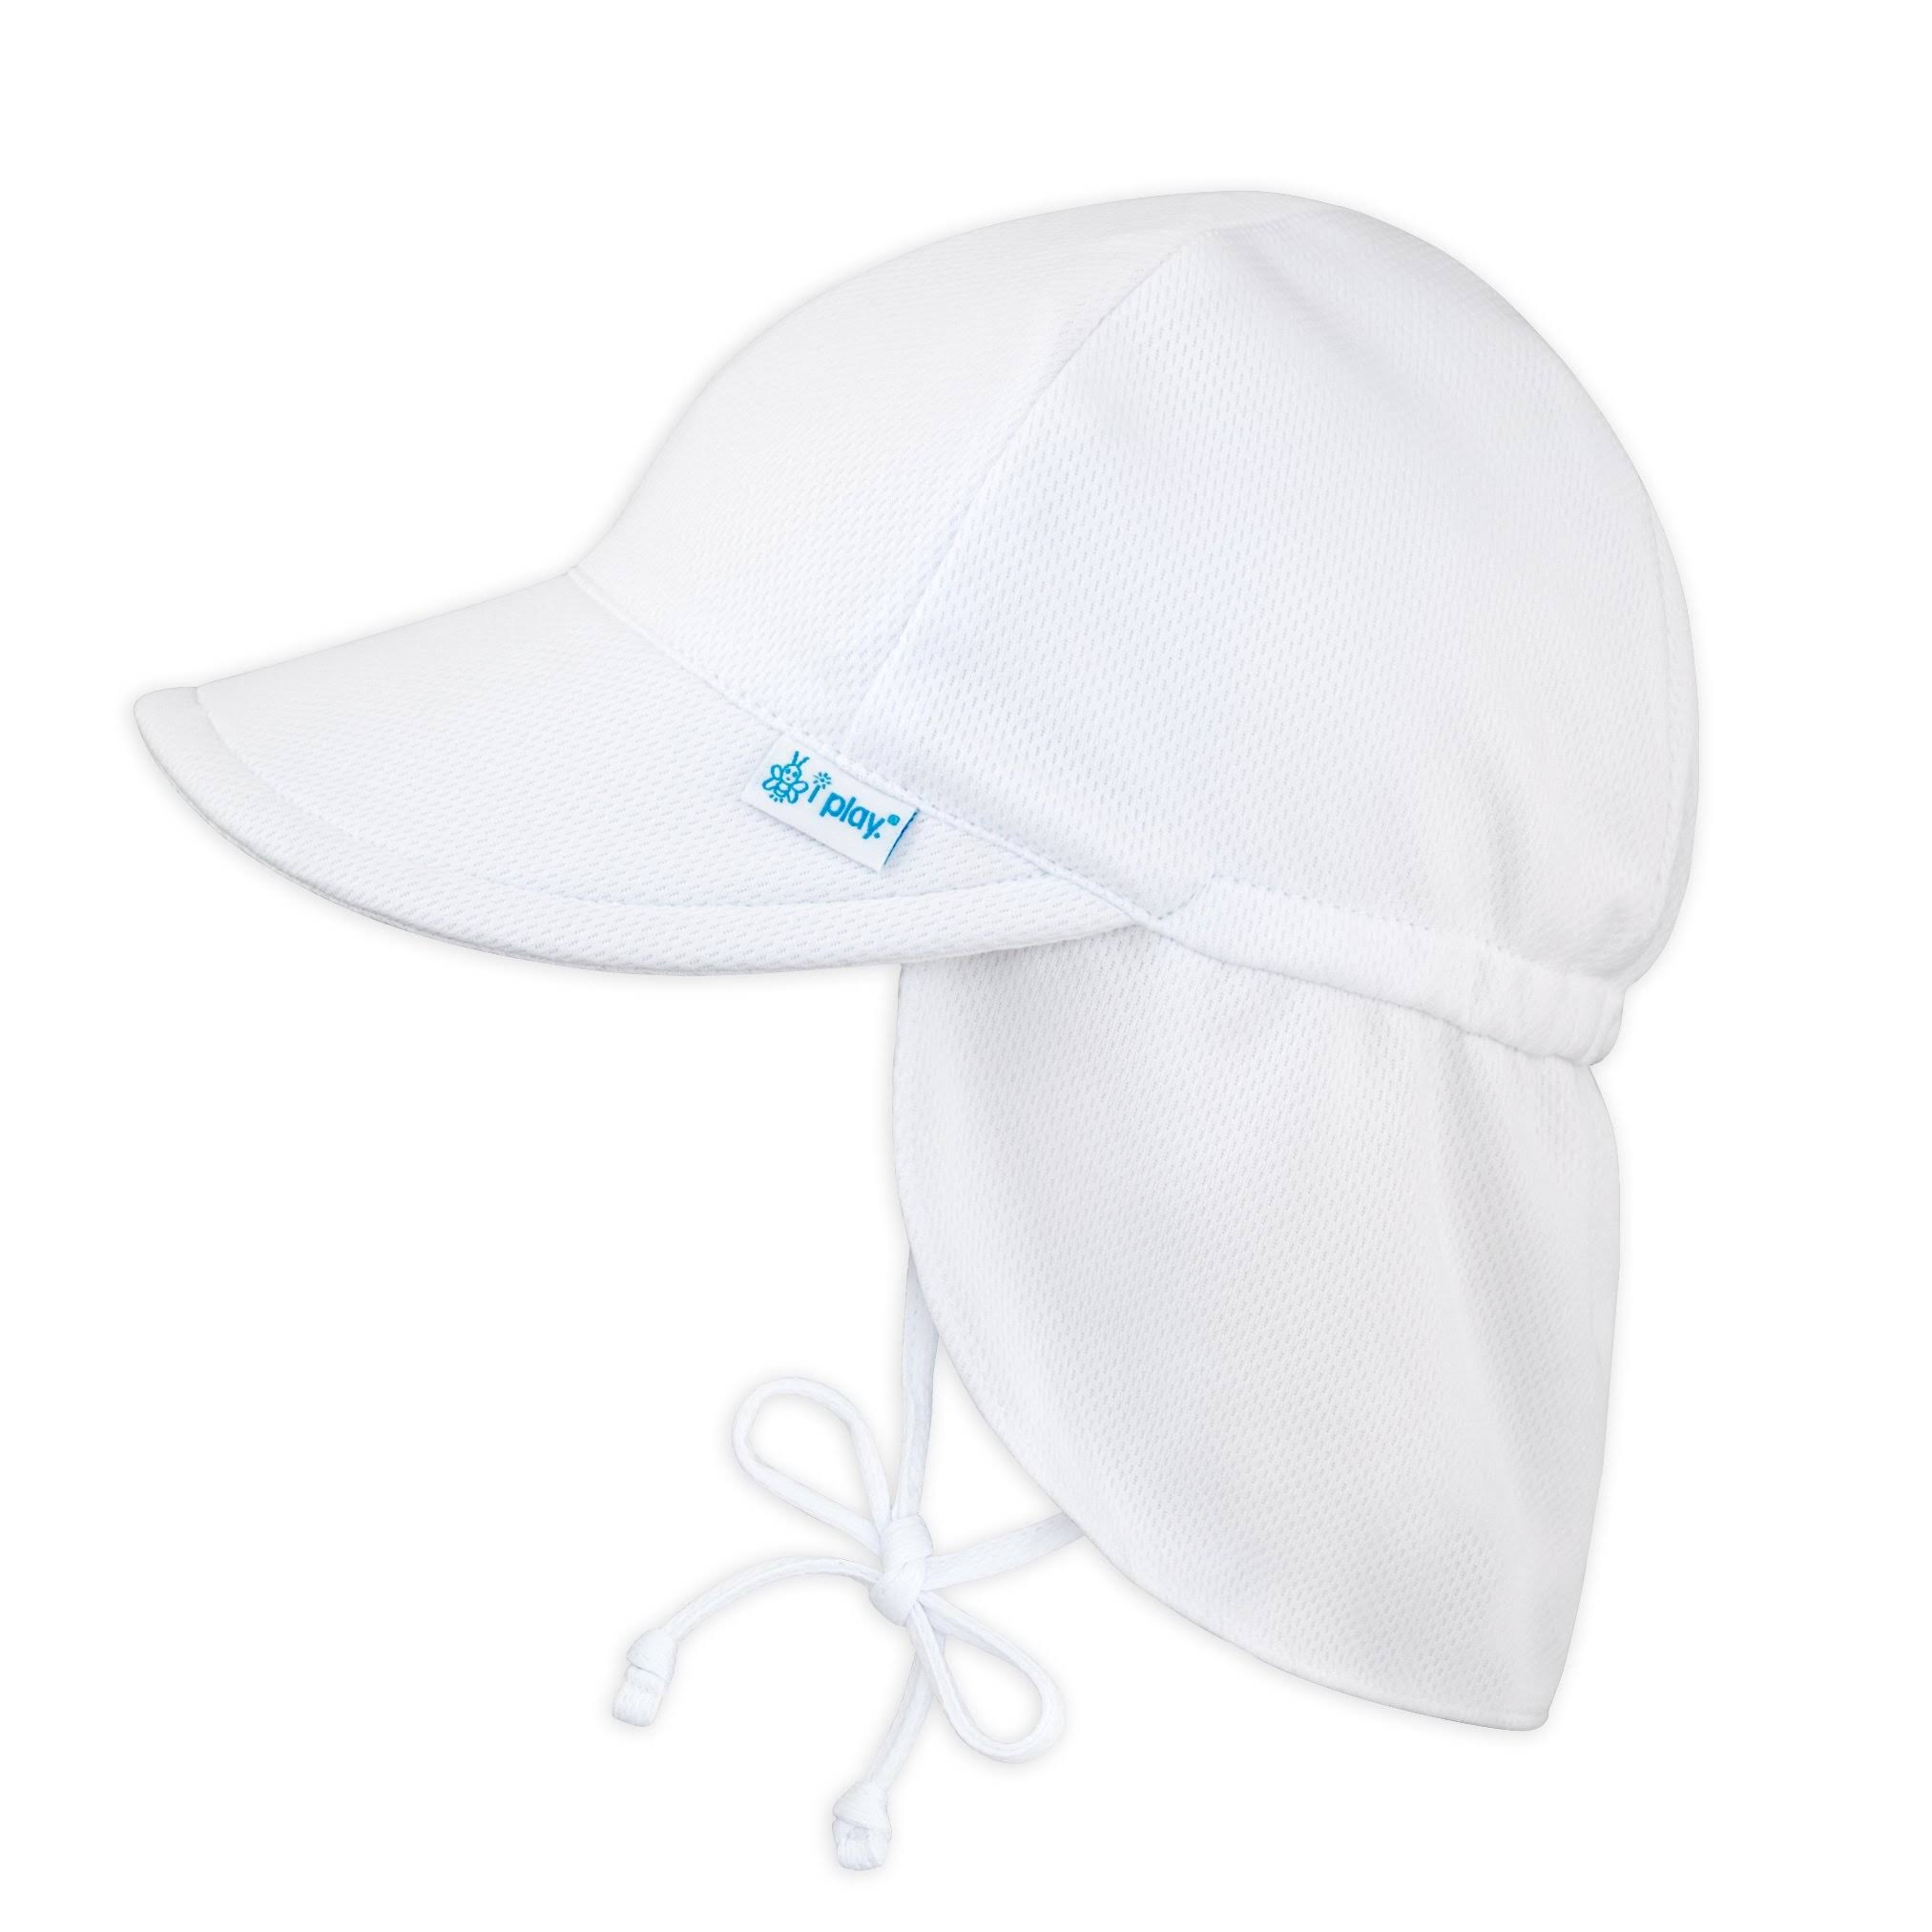 I Play. Toddler Girls Breatheasy Flap Sun Protection Hat Hat - White, 2T and 4T